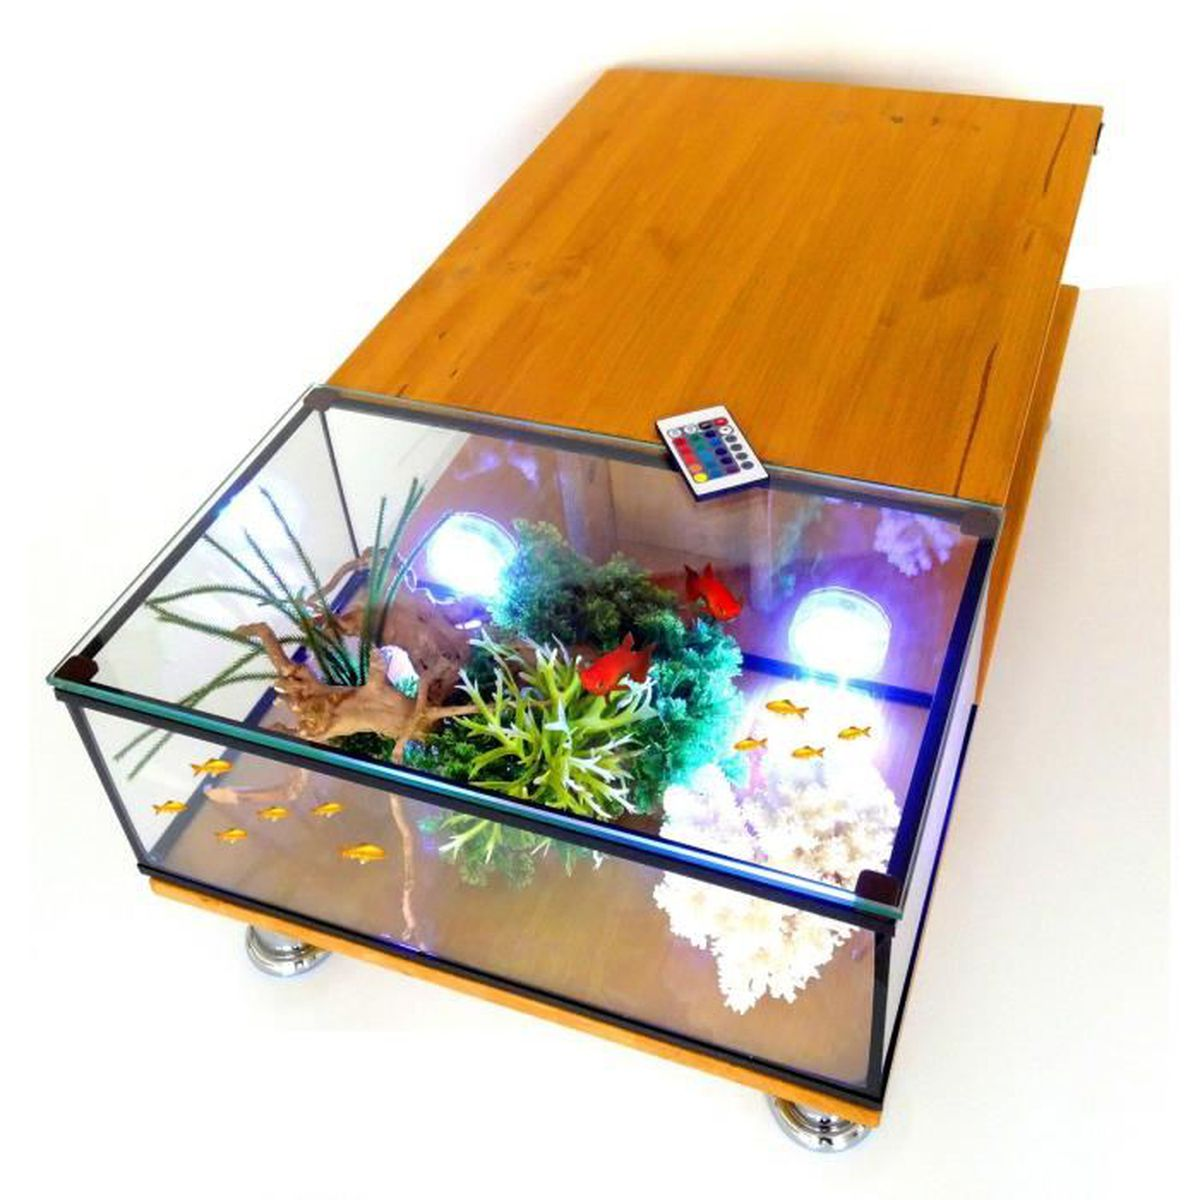 TABLE BASSE AQUARIUM ANNAROUSSE 20 LED DESIGN UNIQUE ALAIN FLOCH ...